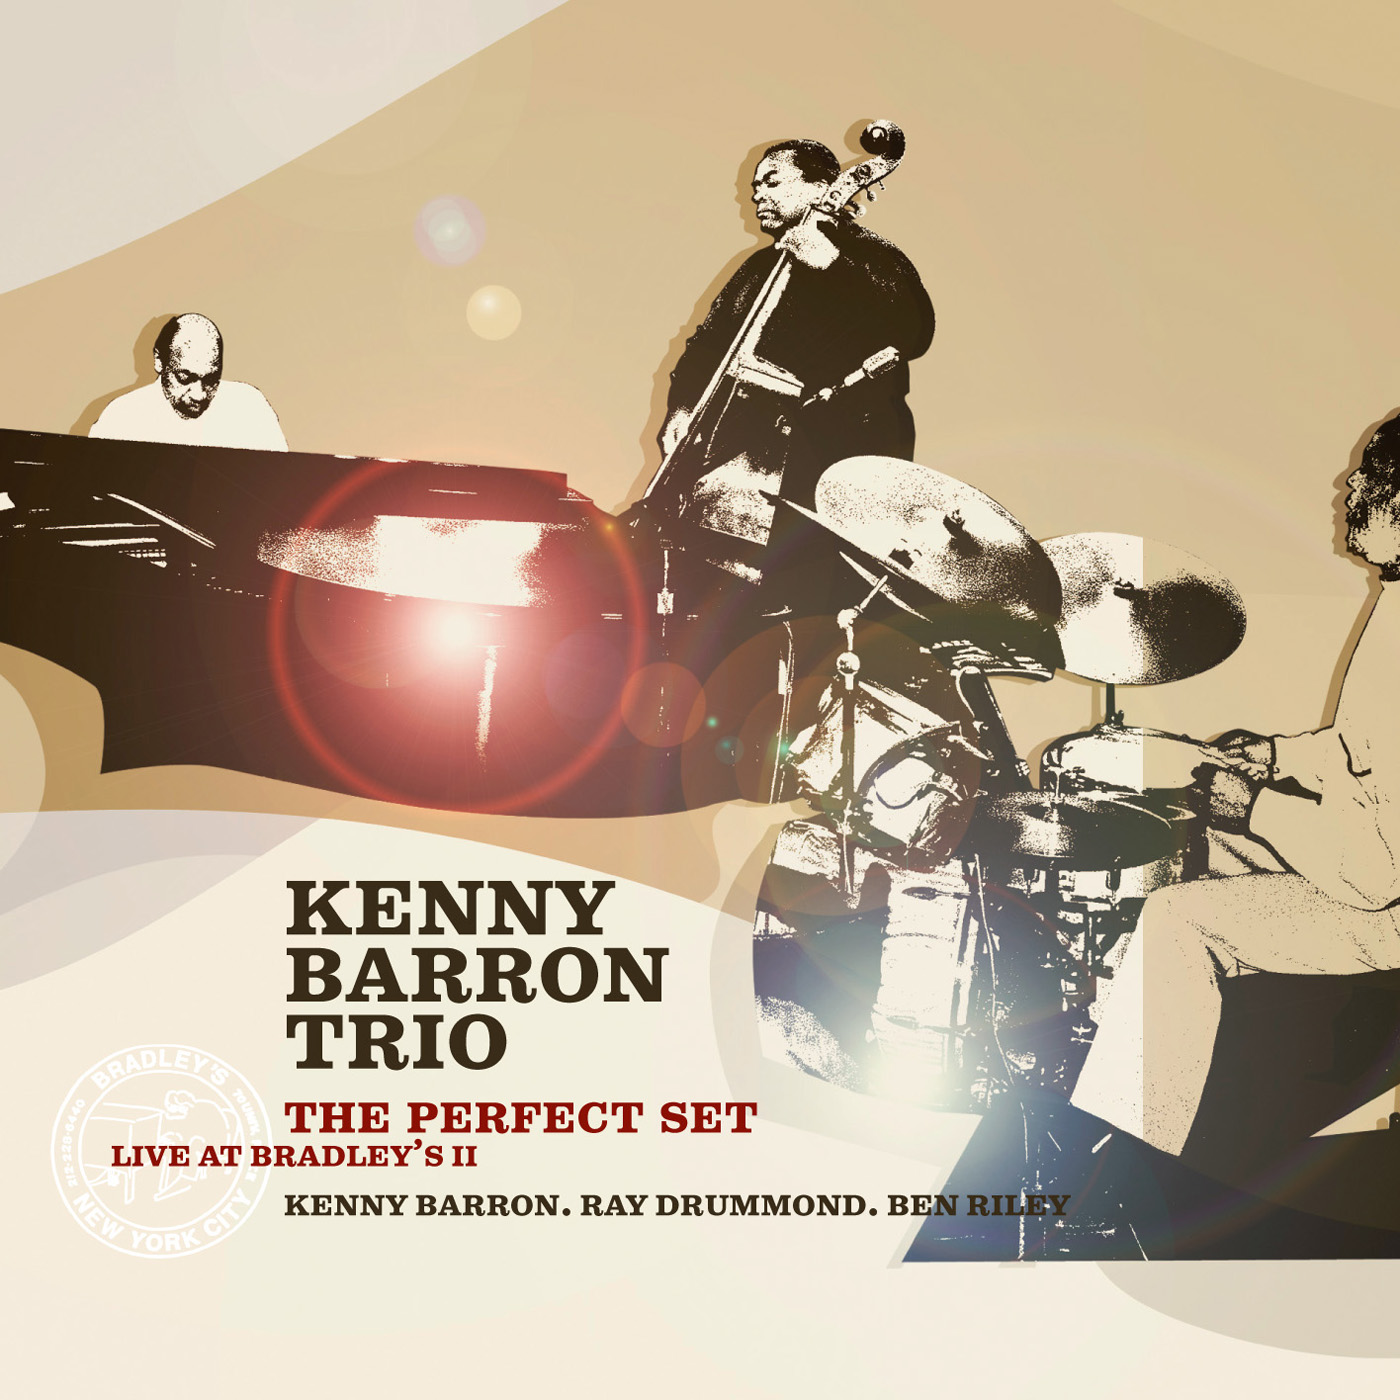 The Perfect Set - Live at Bradley\'s II by Kenny Barron Trio